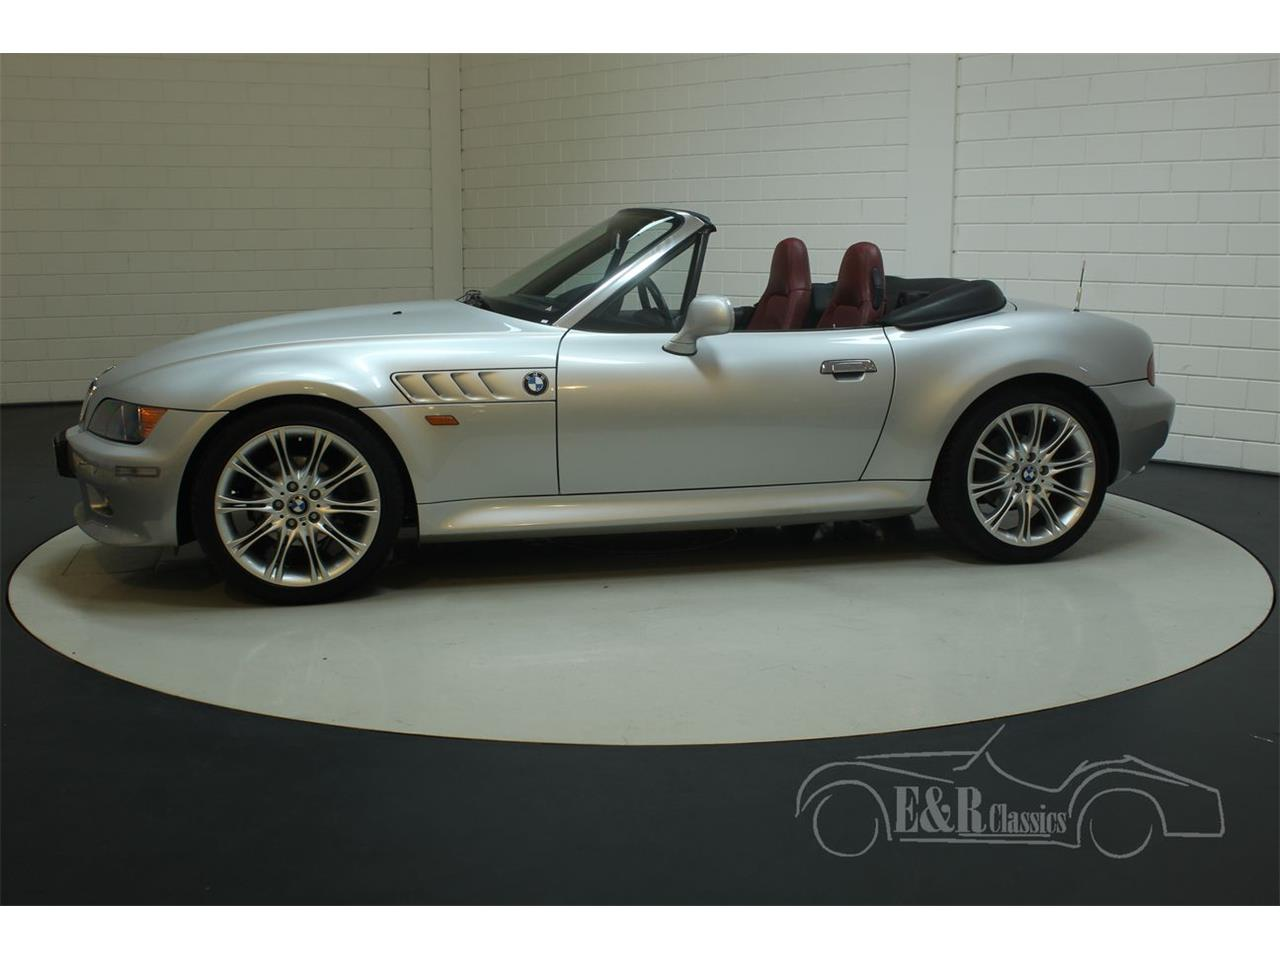 Large Picture of '01 BMW Z3 located in Waalwijk Noord-Brabant - $19,150.00 Offered by E & R Classics - PNX1